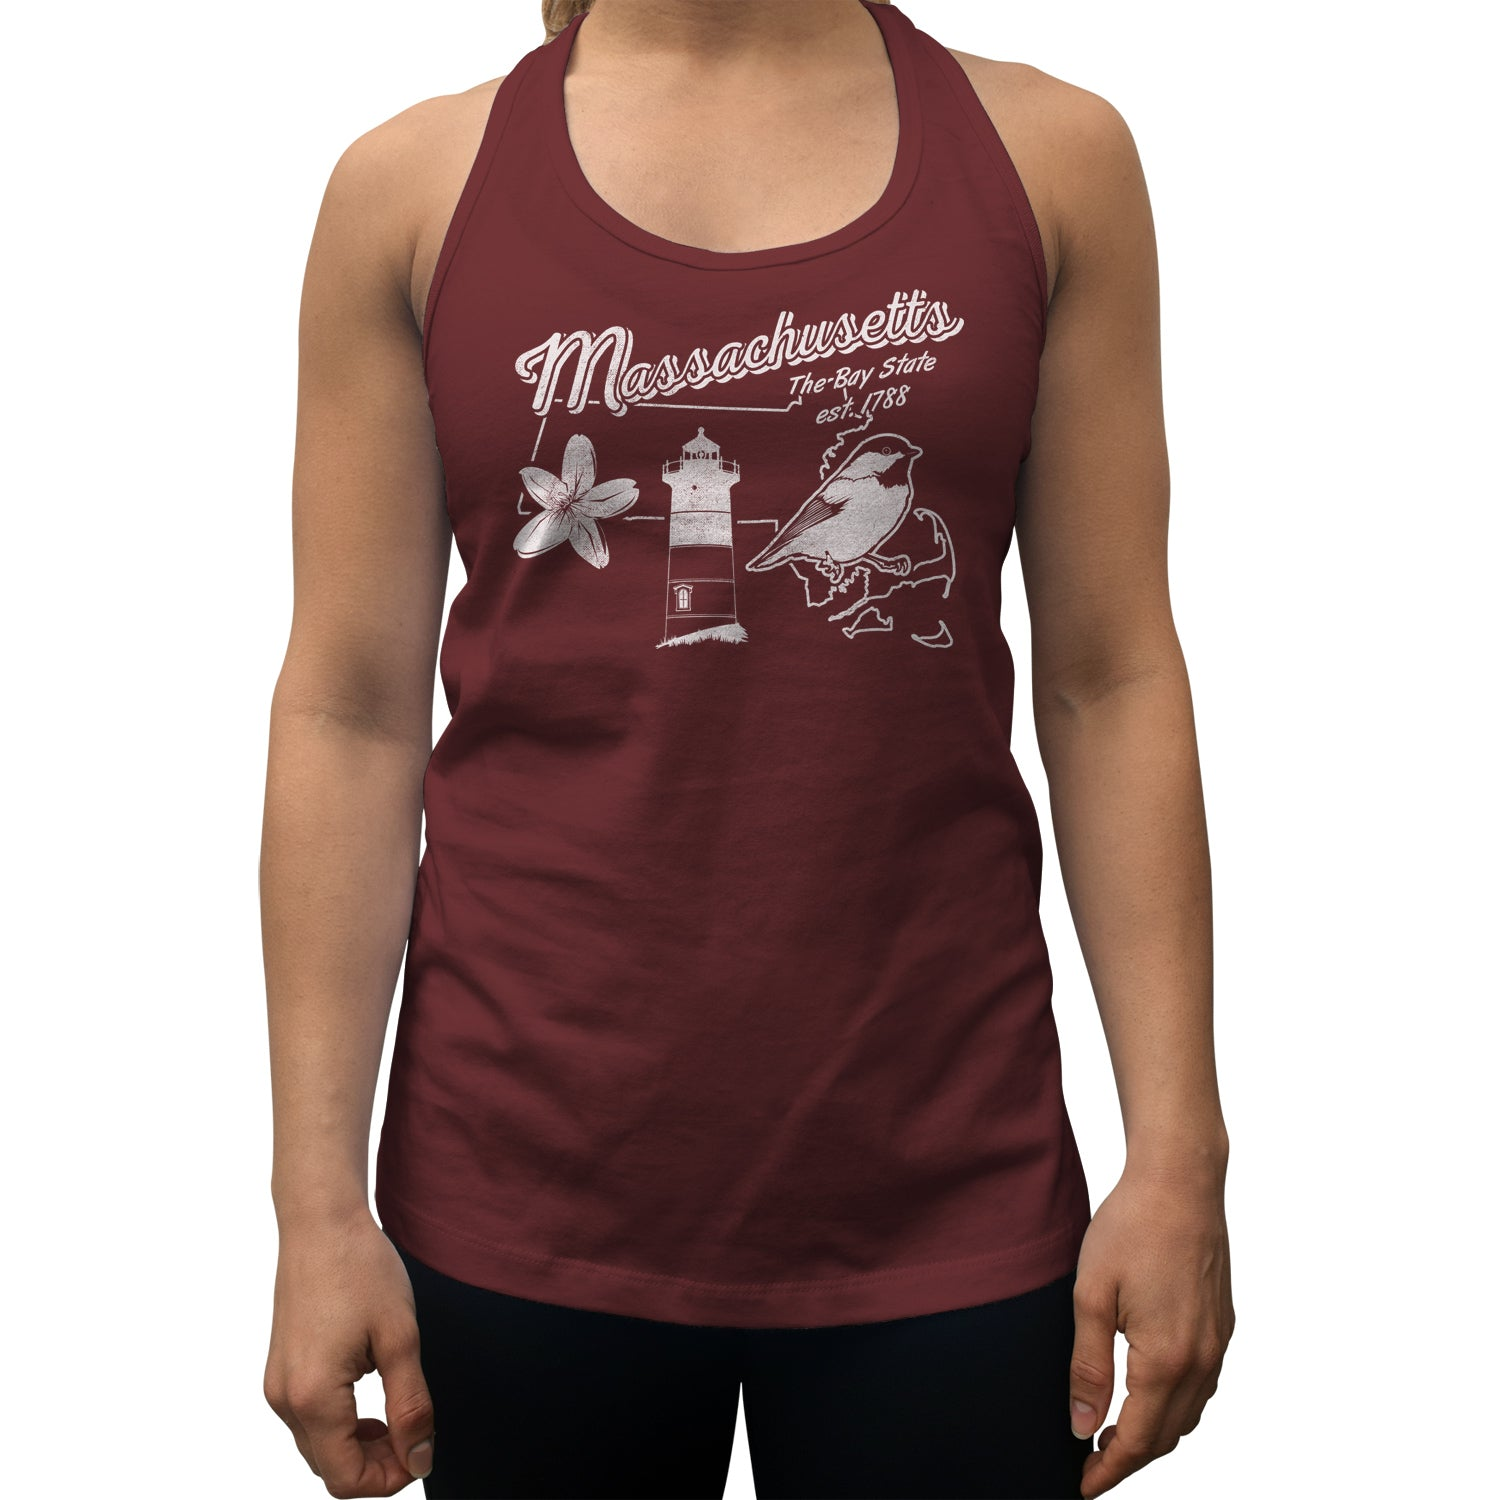 Women's Vintage Massachusetts Racerback Tank Top